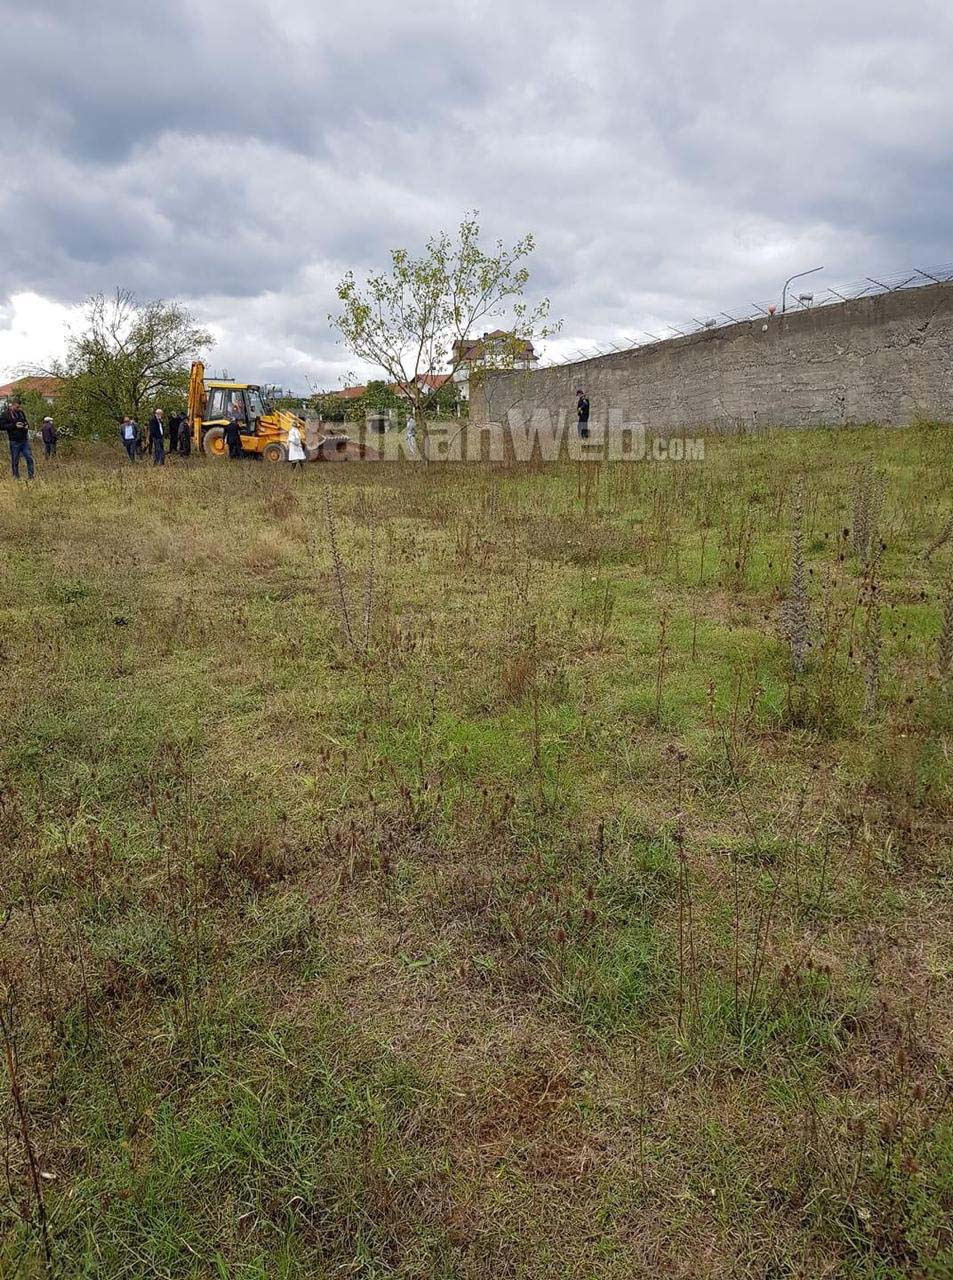 Excavations Start at Burrel Prison, Searching for Remains of Victims of Communism